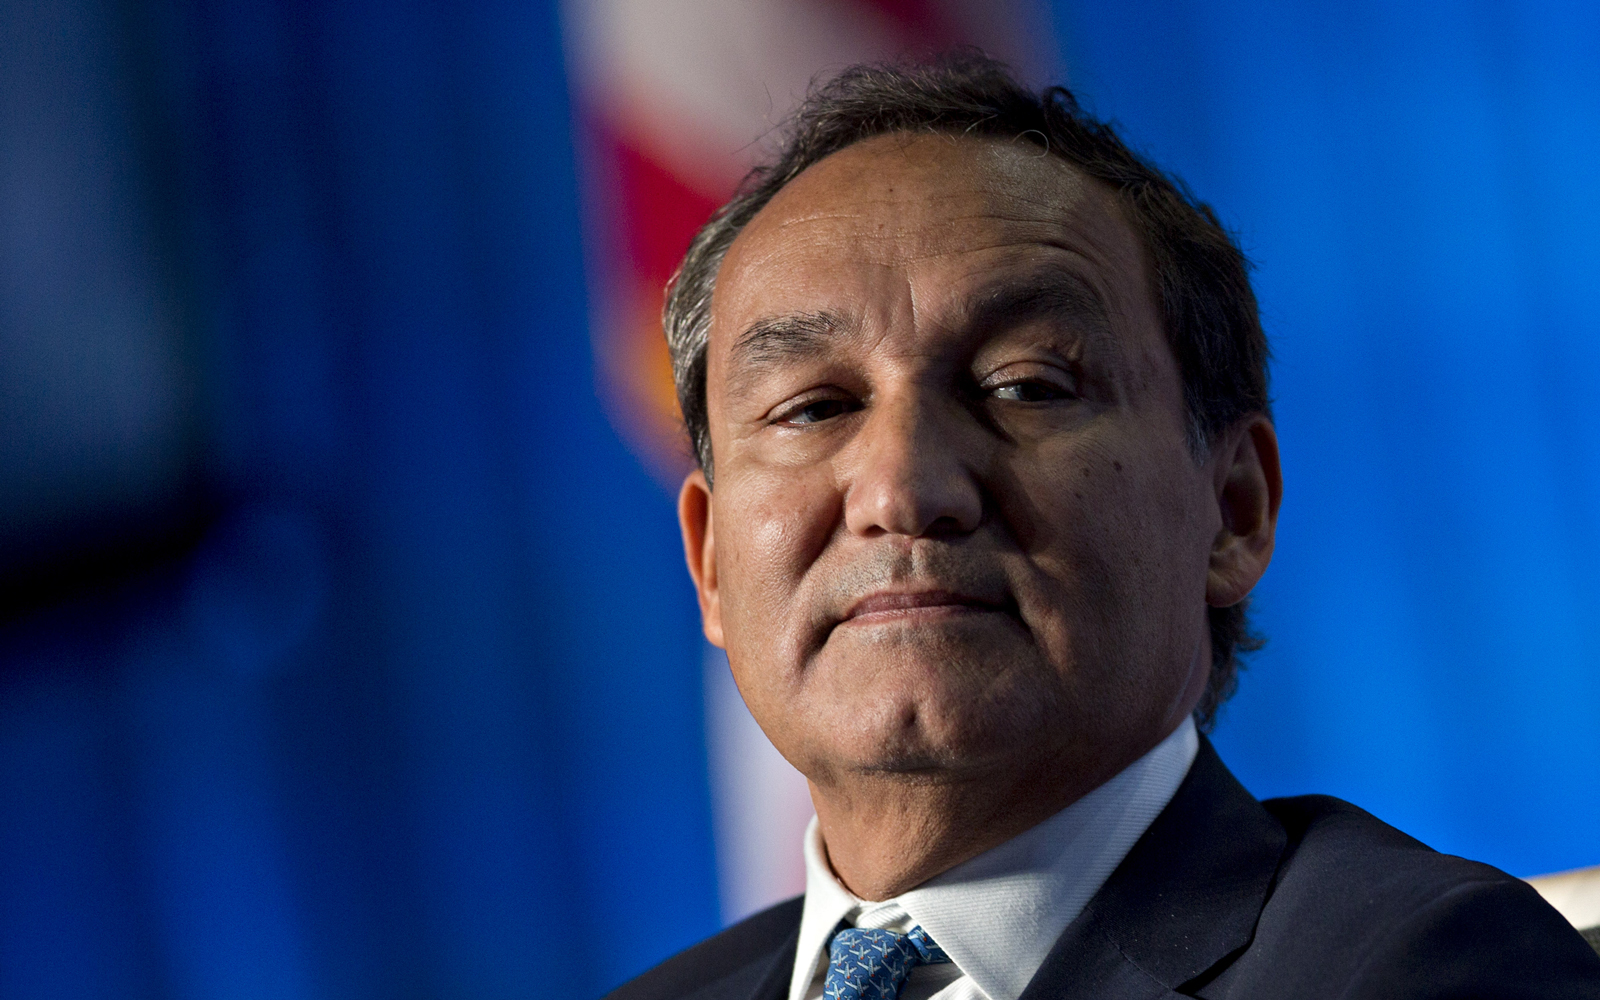 Watch United CEO Oscar Munoz face House Transportation Committee over passenger treatment